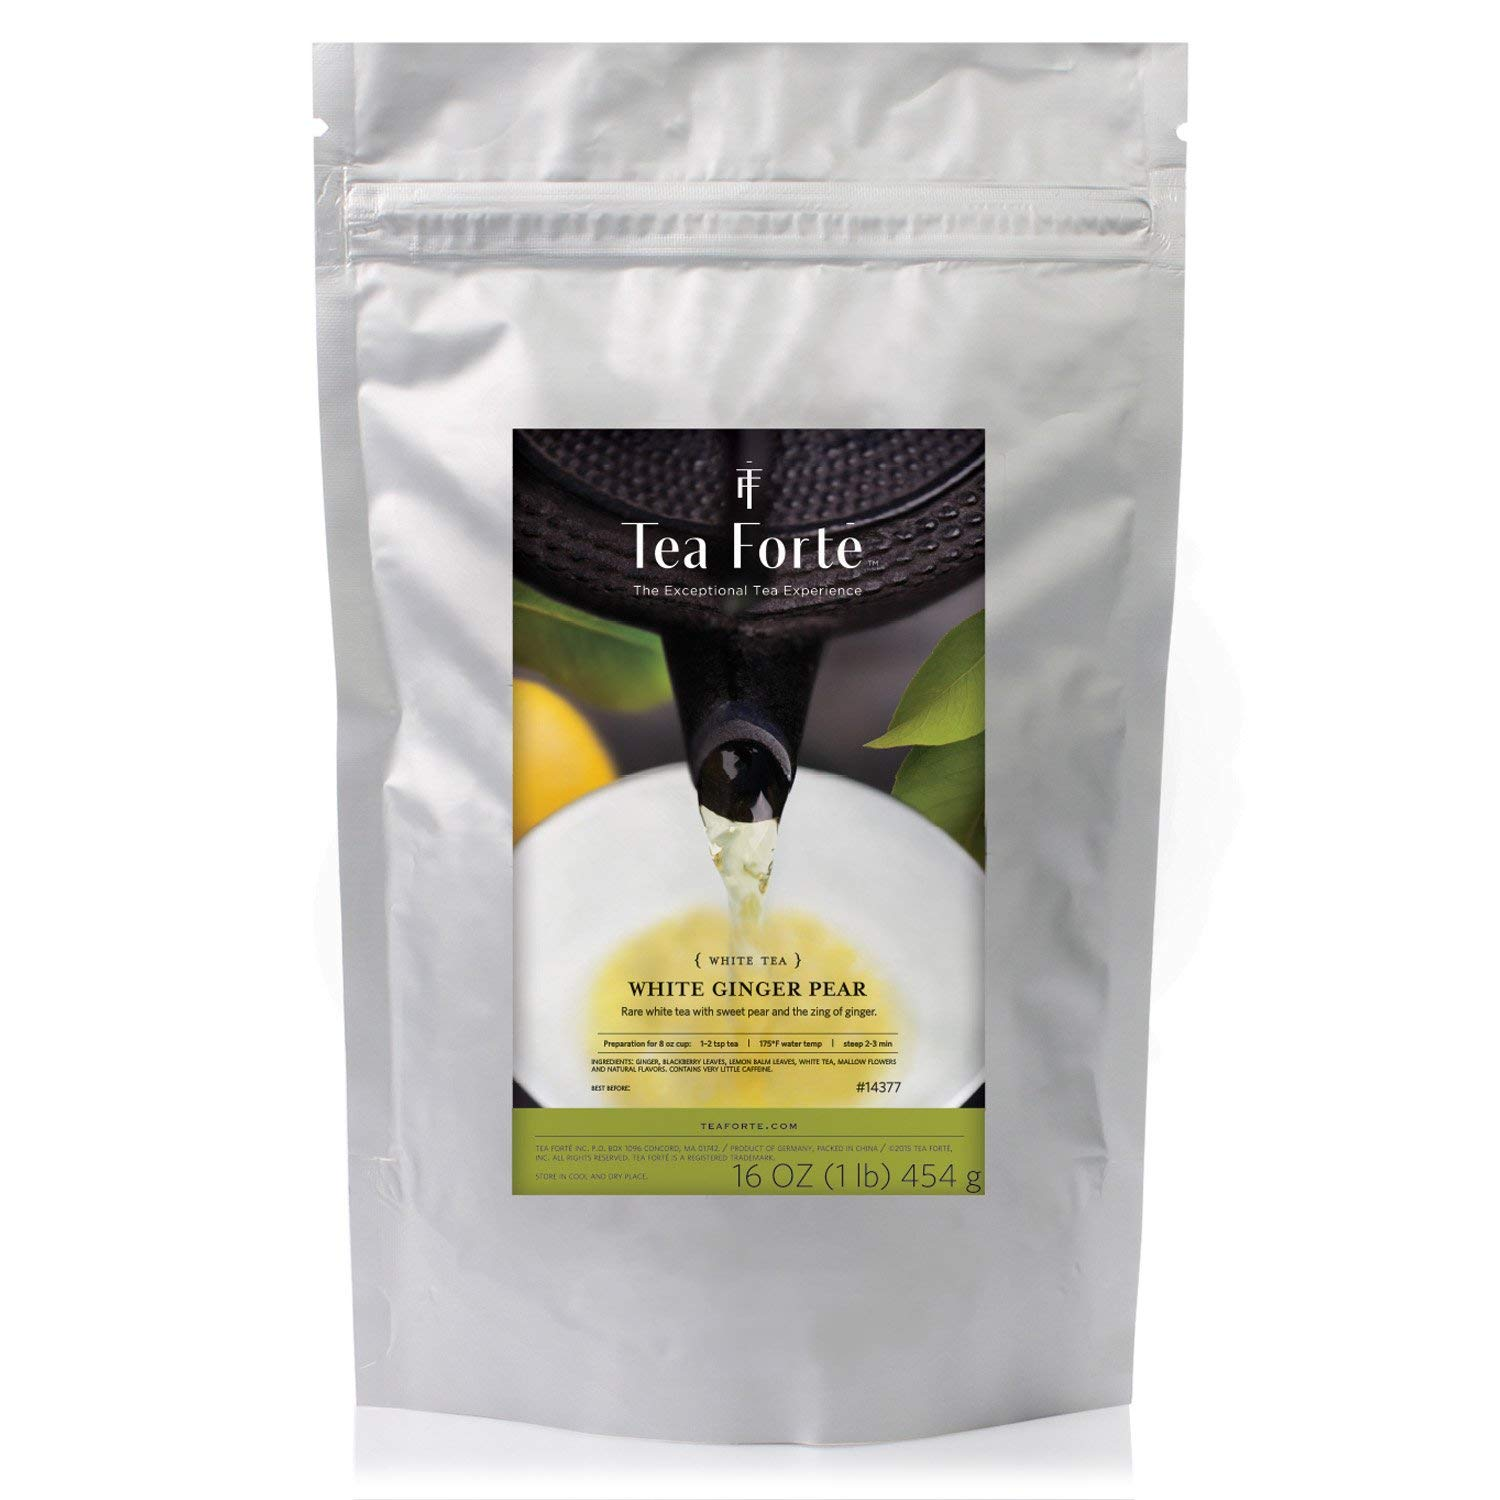 Tea Forté ONE POUND POUCH, Loose Bulk Tea - White Ginger Pear White Tea by Tea Forte